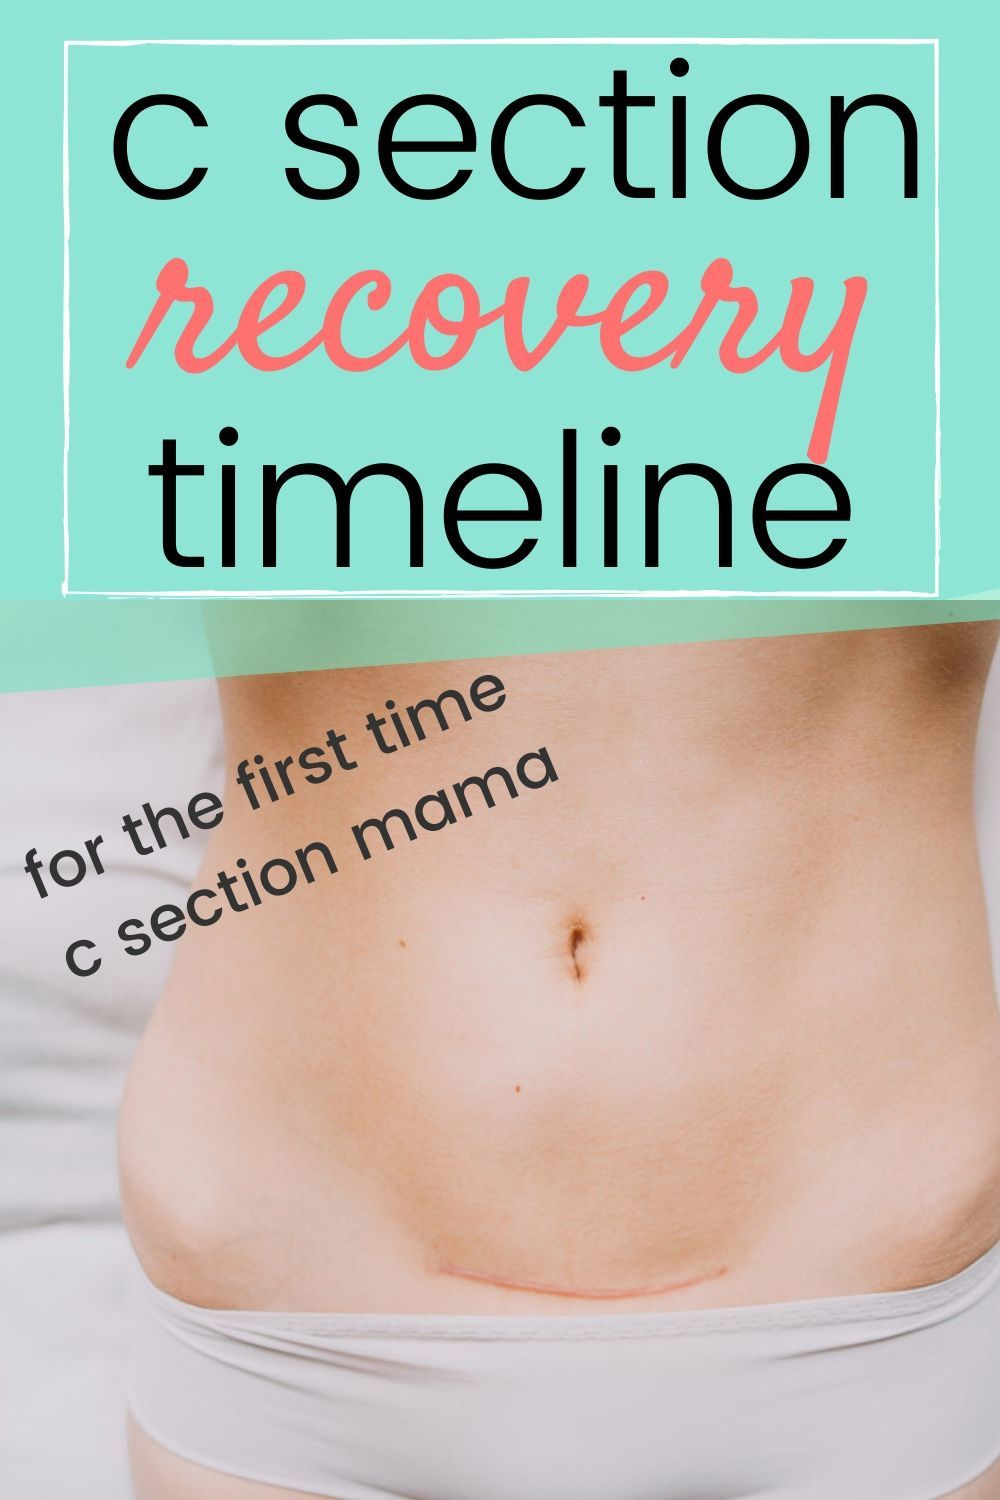 C SECTION RECOVERY TIMELINE | C section recovery, C ...